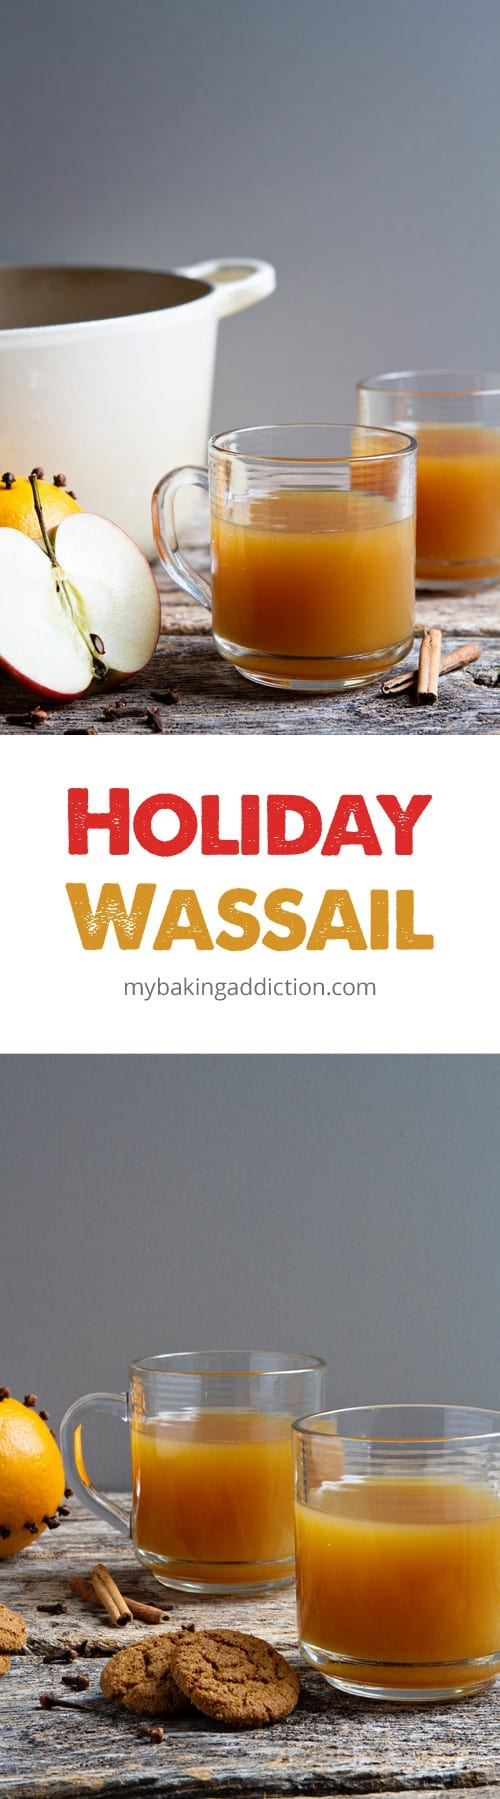 Holiday Wassail is the perfect warm and cozy beverage for the holidays! So great for entertaining!